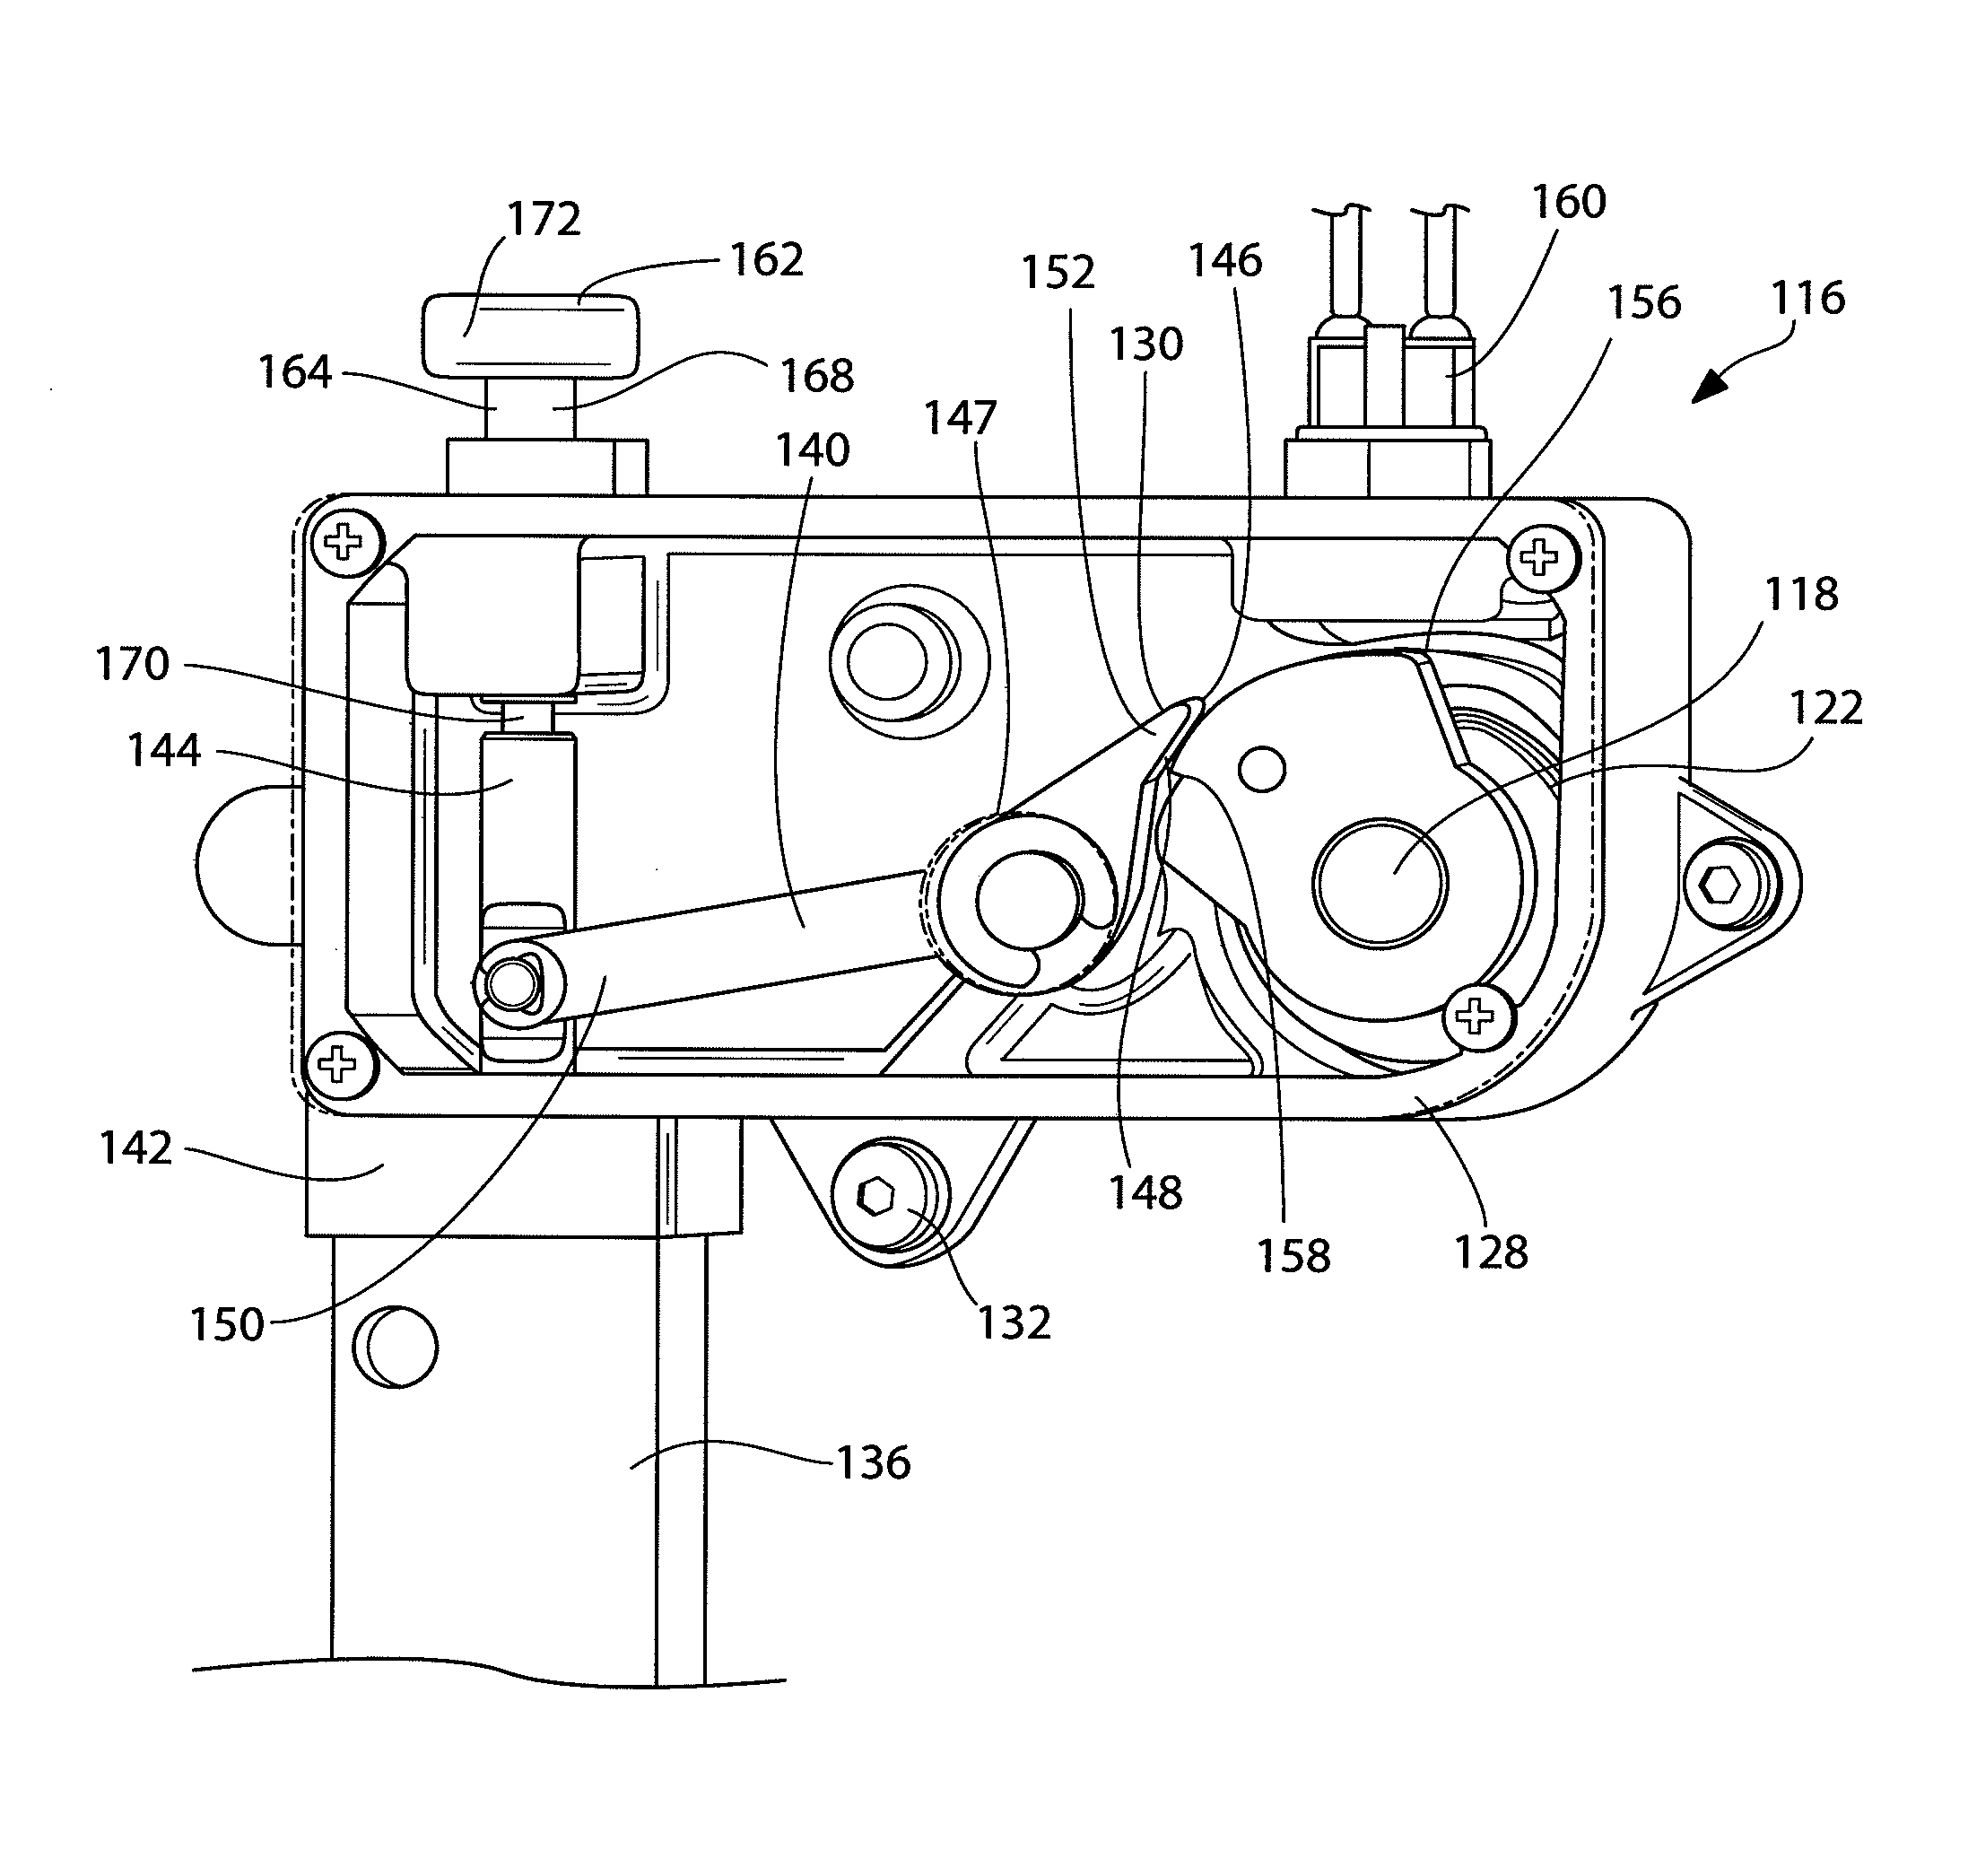 US20130068972A1 20130321 D00000 patent us20130068972 air shutoff swing gate valve google patents roda deaco valve wiring diagram at bayanpartner.co